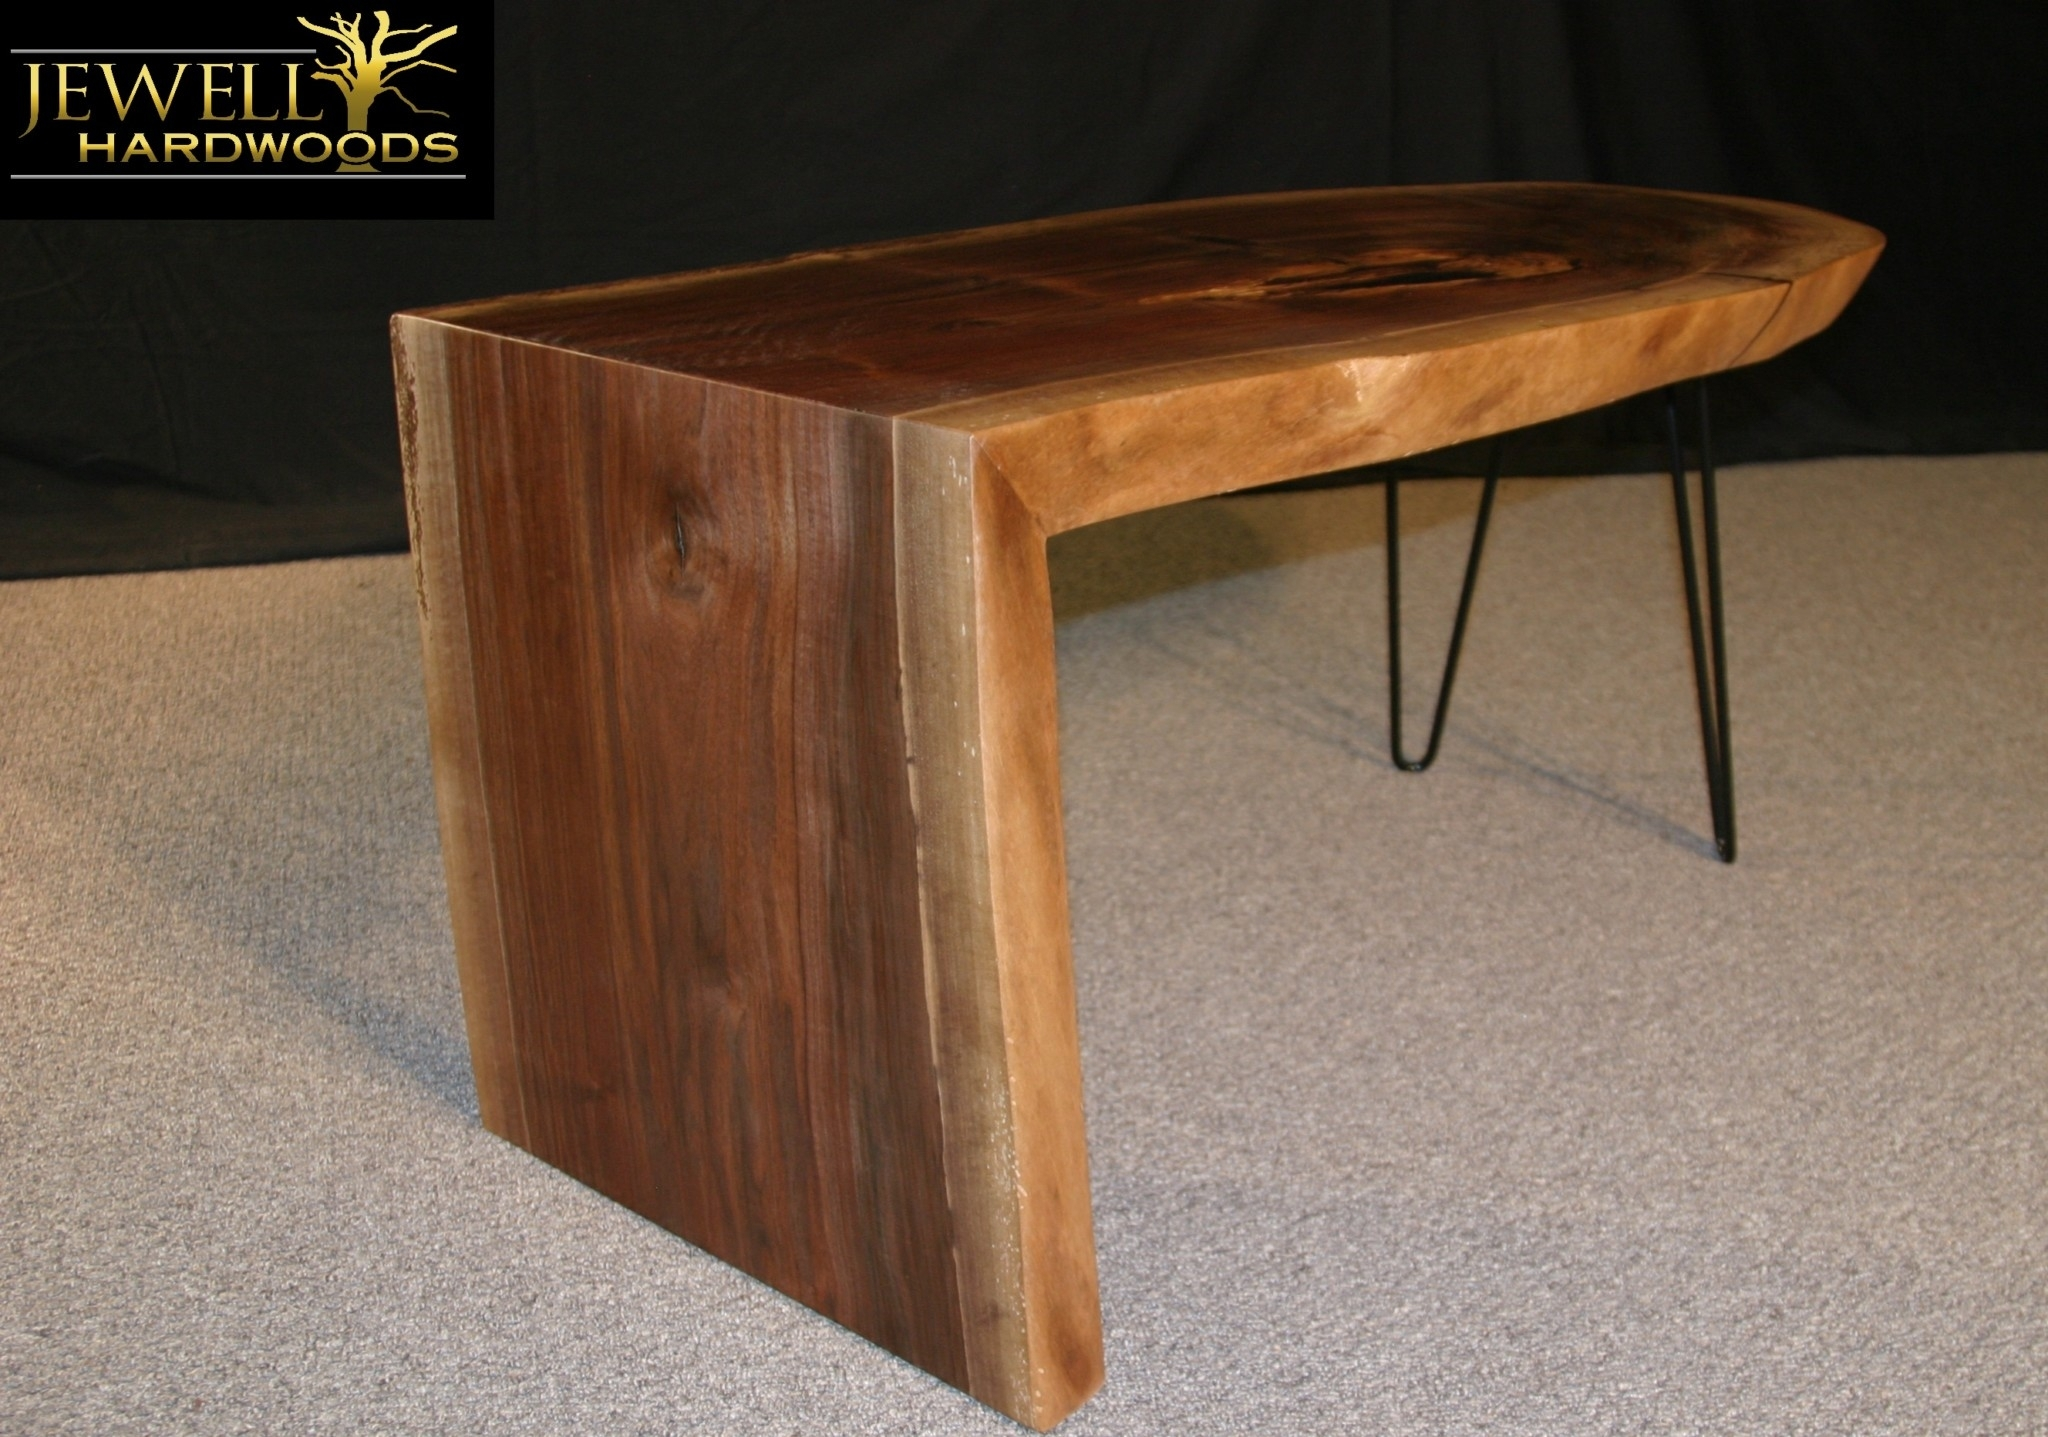 Waterfall Coffee Table With Metal Hairpins Jewell Hardwoods Logo1 Throughout Waterfall Coffee Tables (Photo 9 of 30)